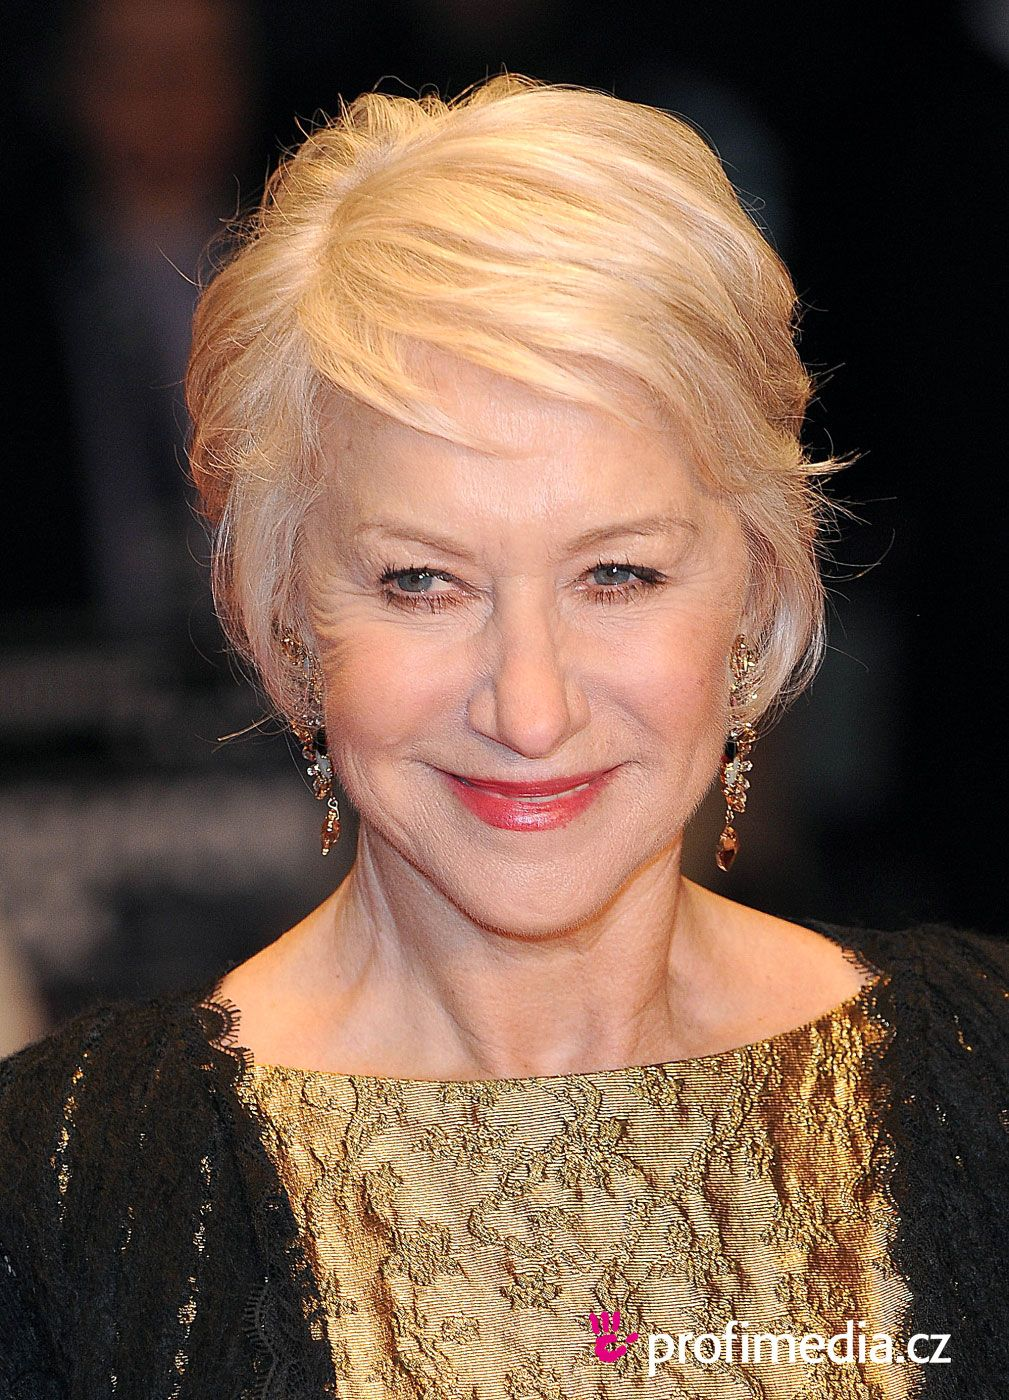 Is a cute Helen Mirren nude photos 2019